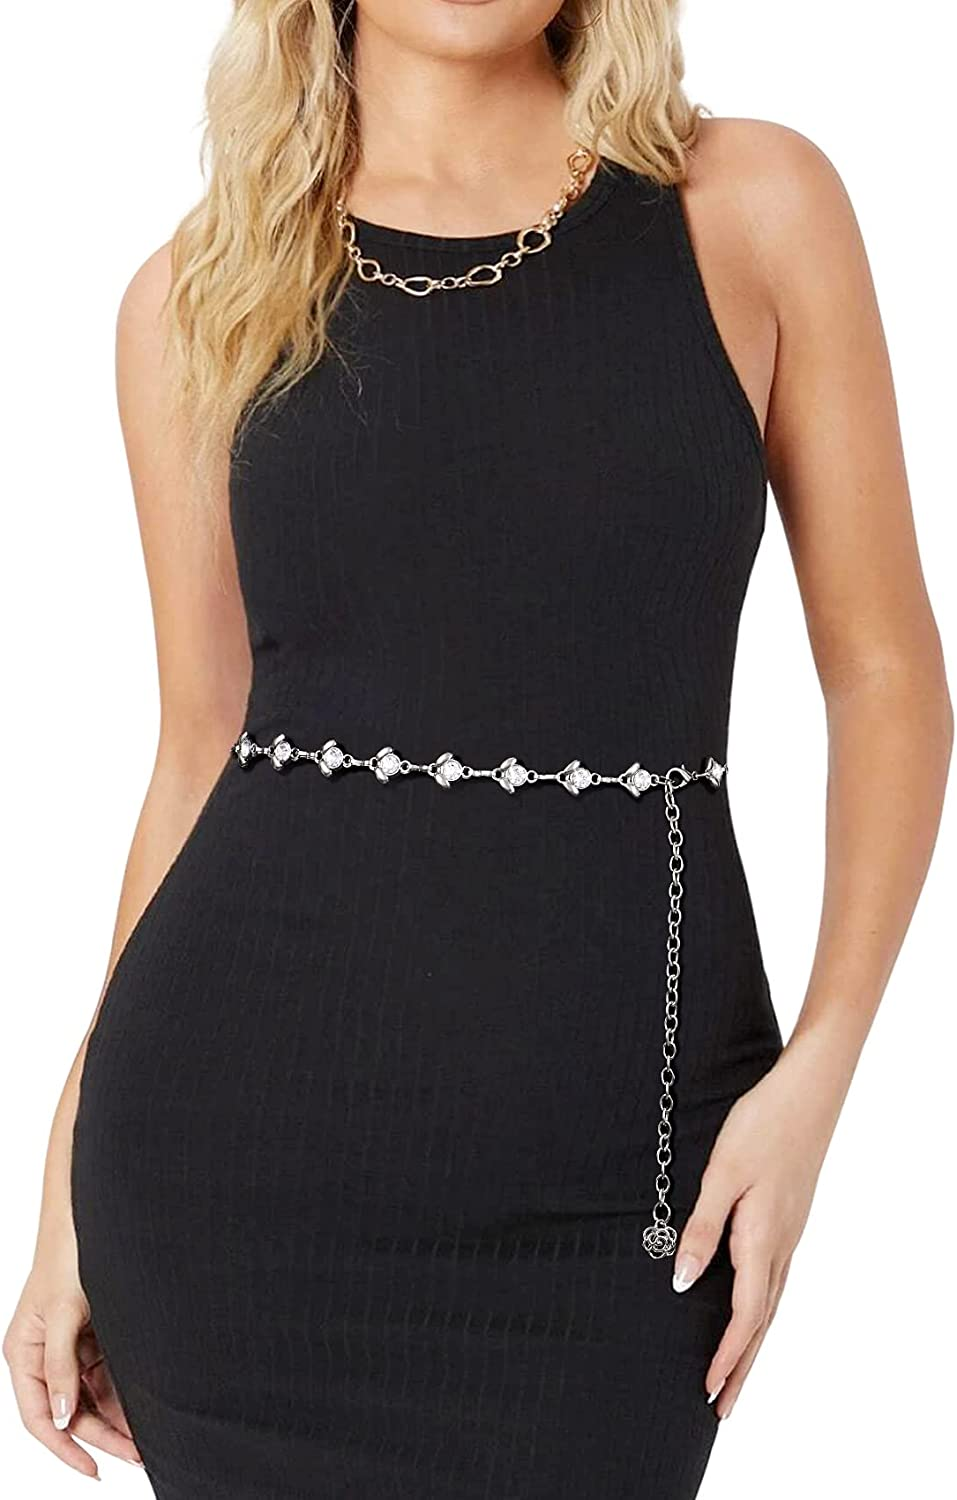 Waist At the price Chain Belts for Women Miami Mall Rhinestone Bel Fashion Crystal